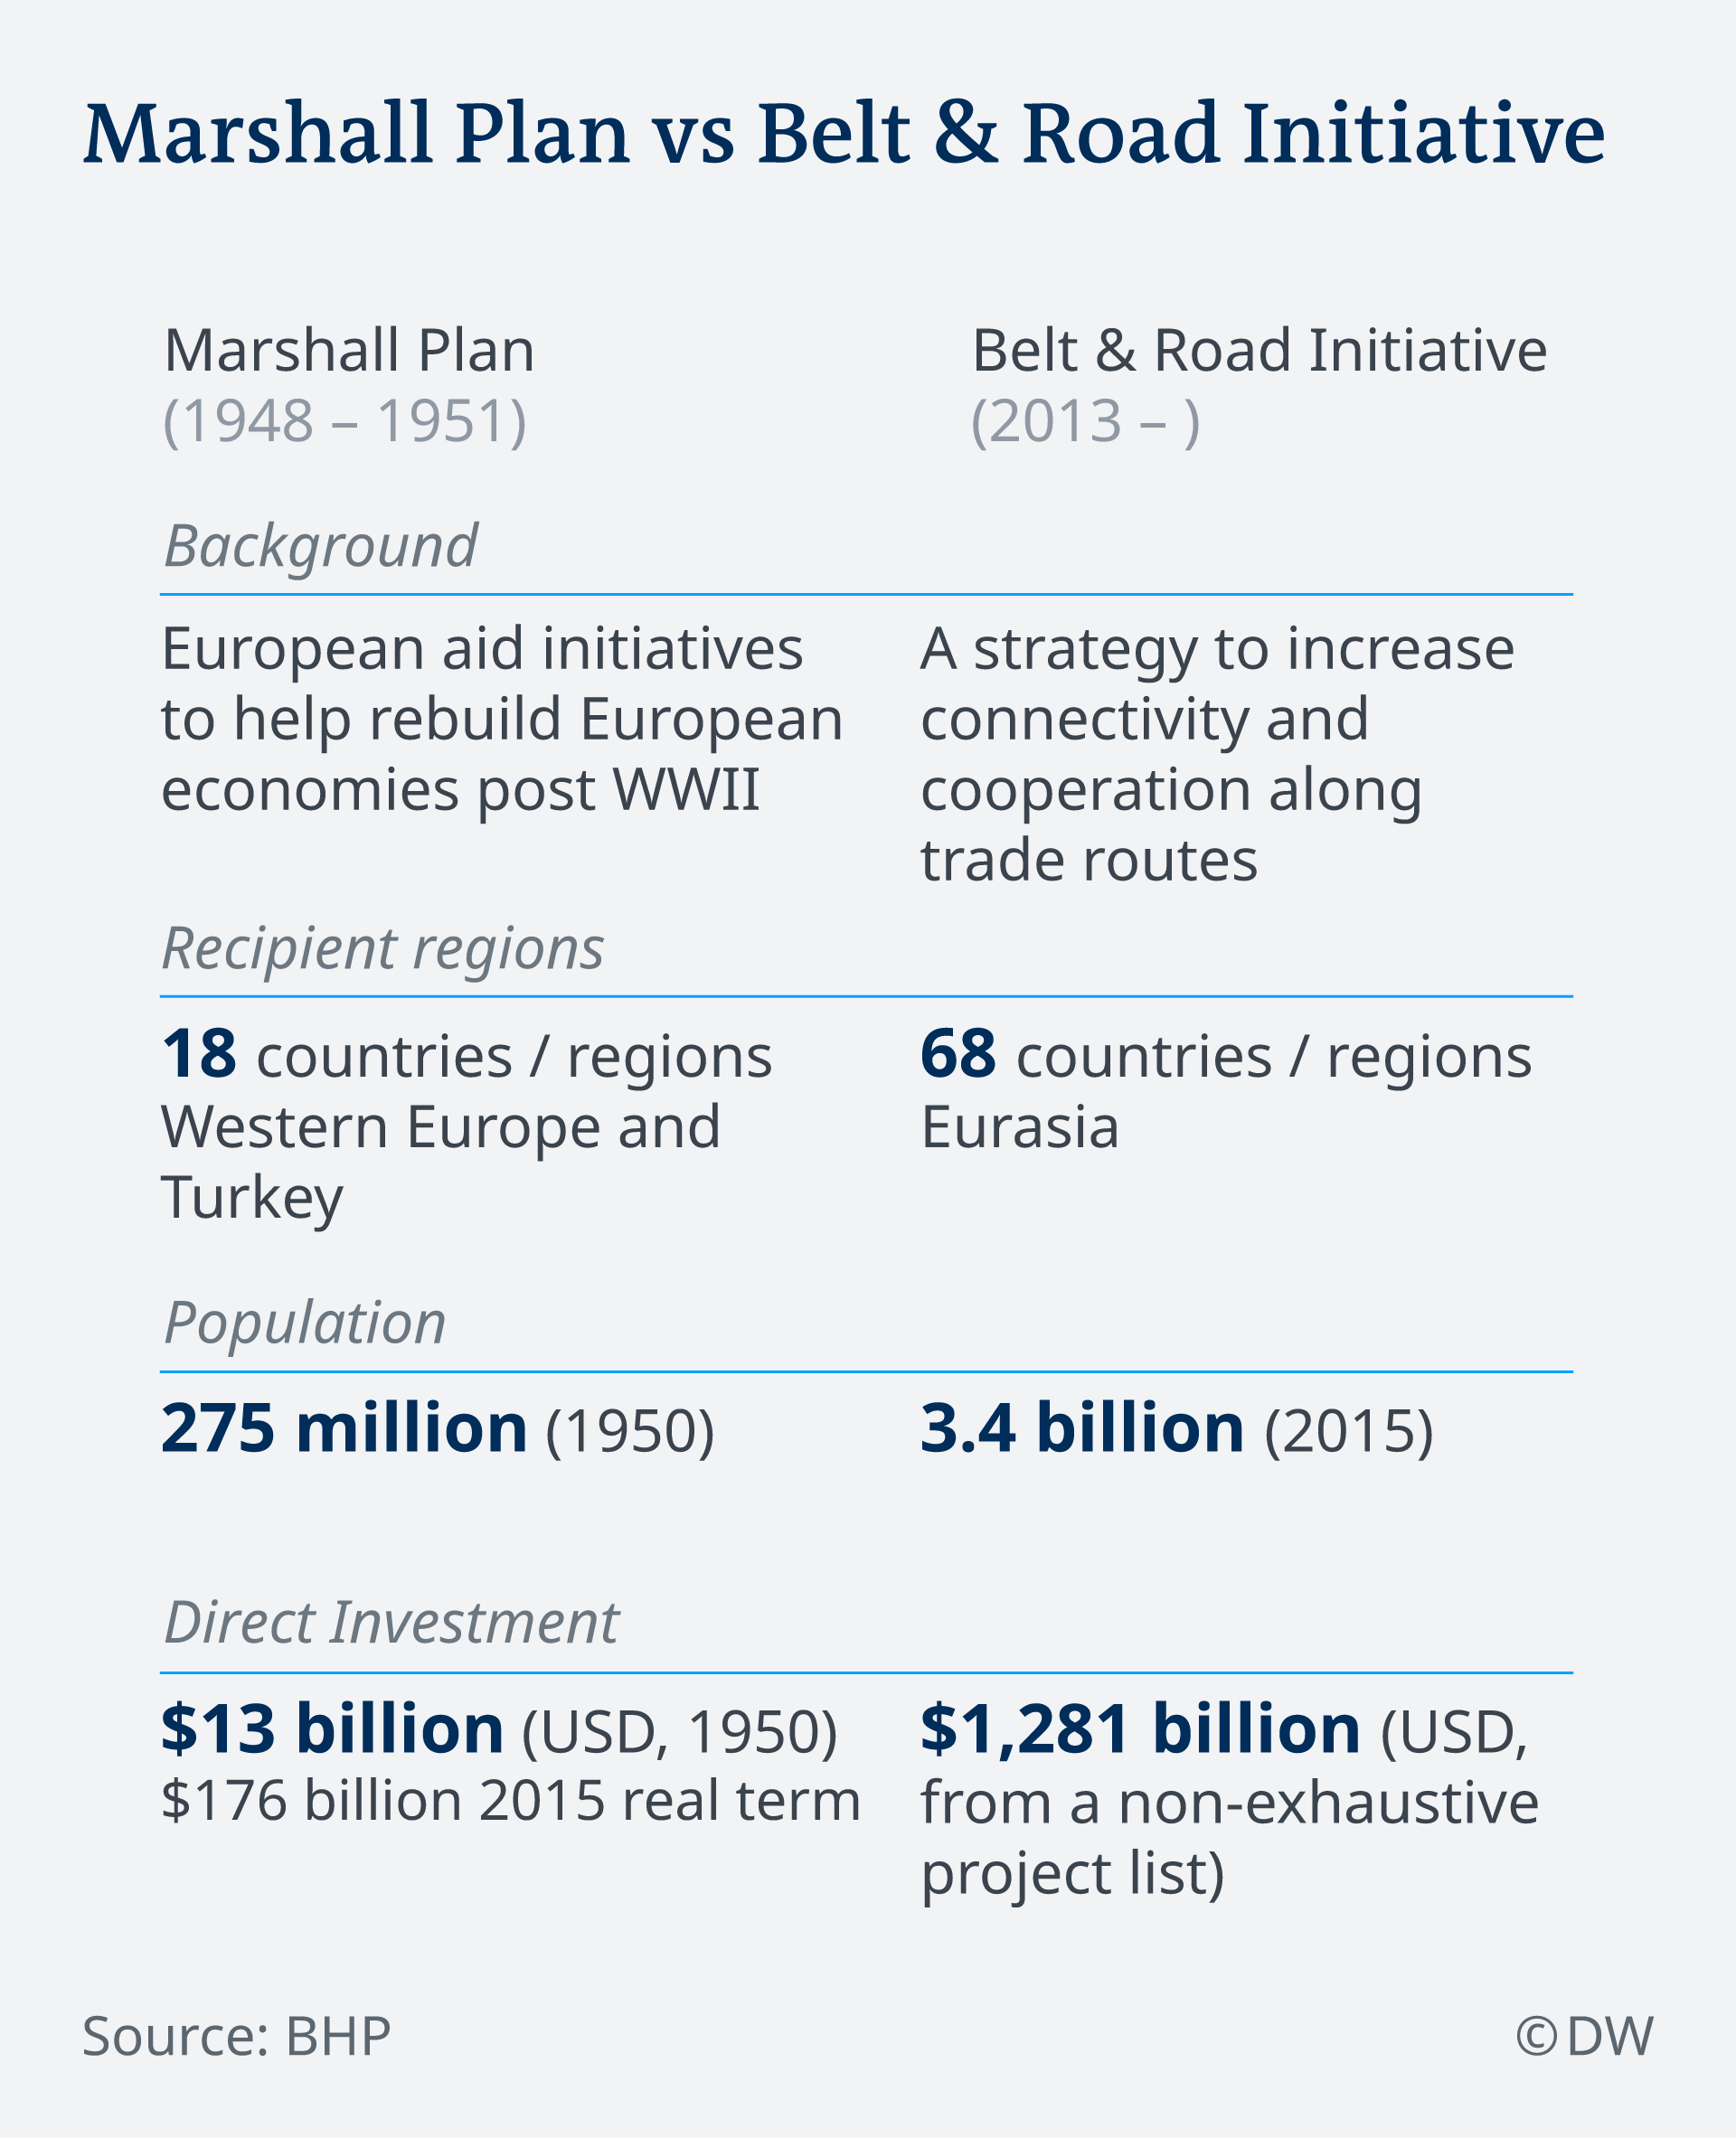 An infographic comparing Marshall Plan and China's Belt and Road Initiative